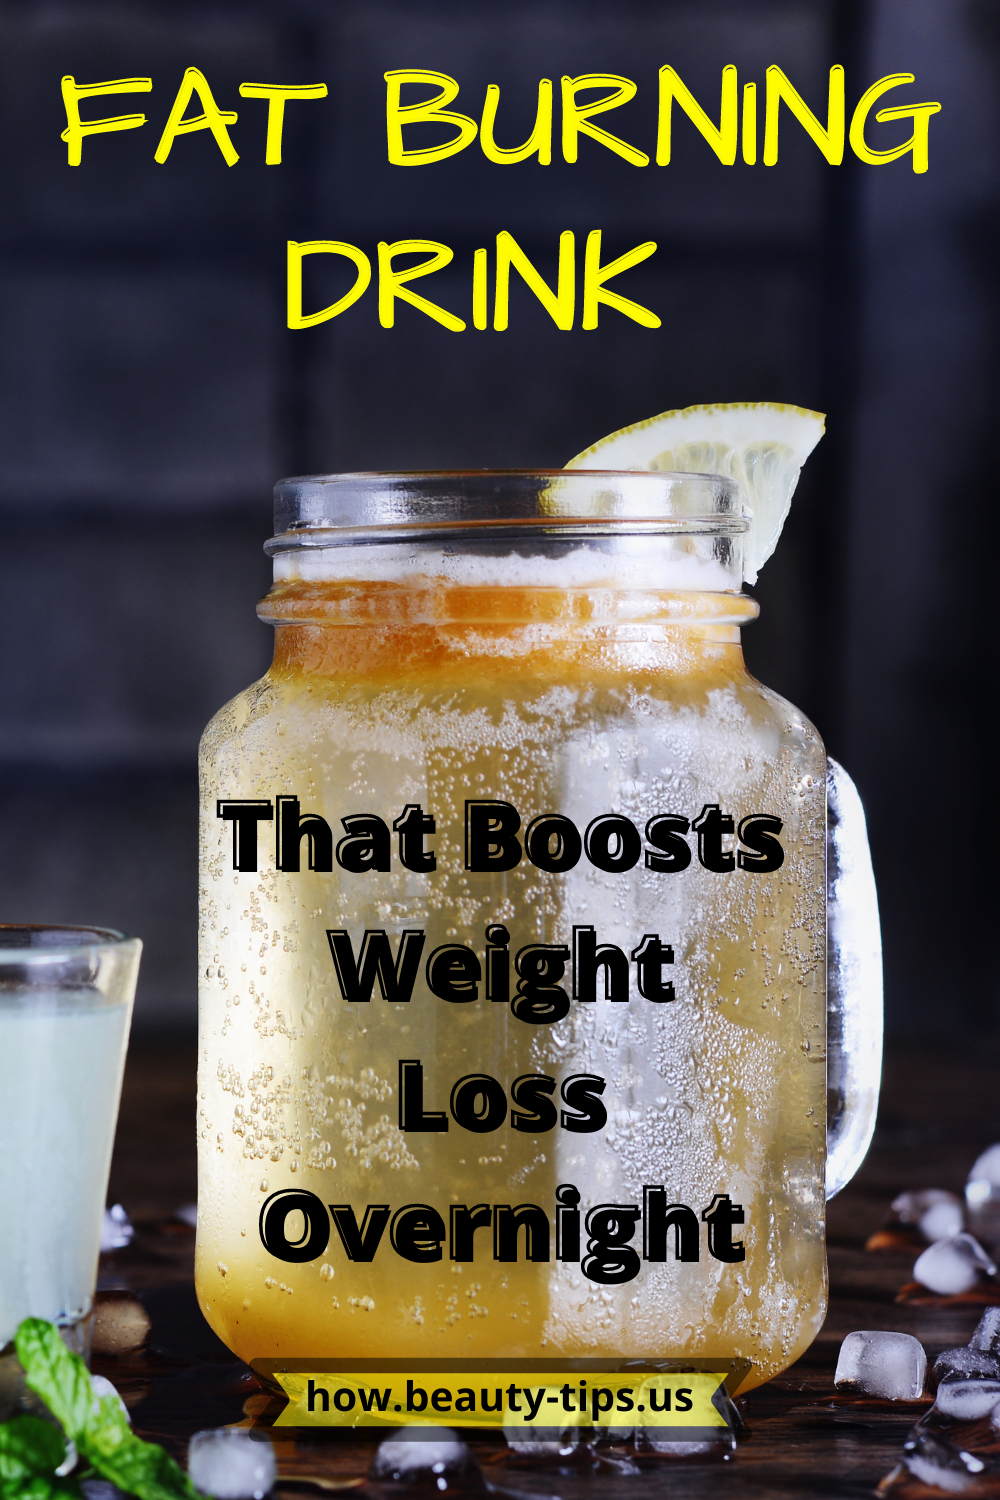 Fat Burning Drink That Boosts Weight Loss Overnight.